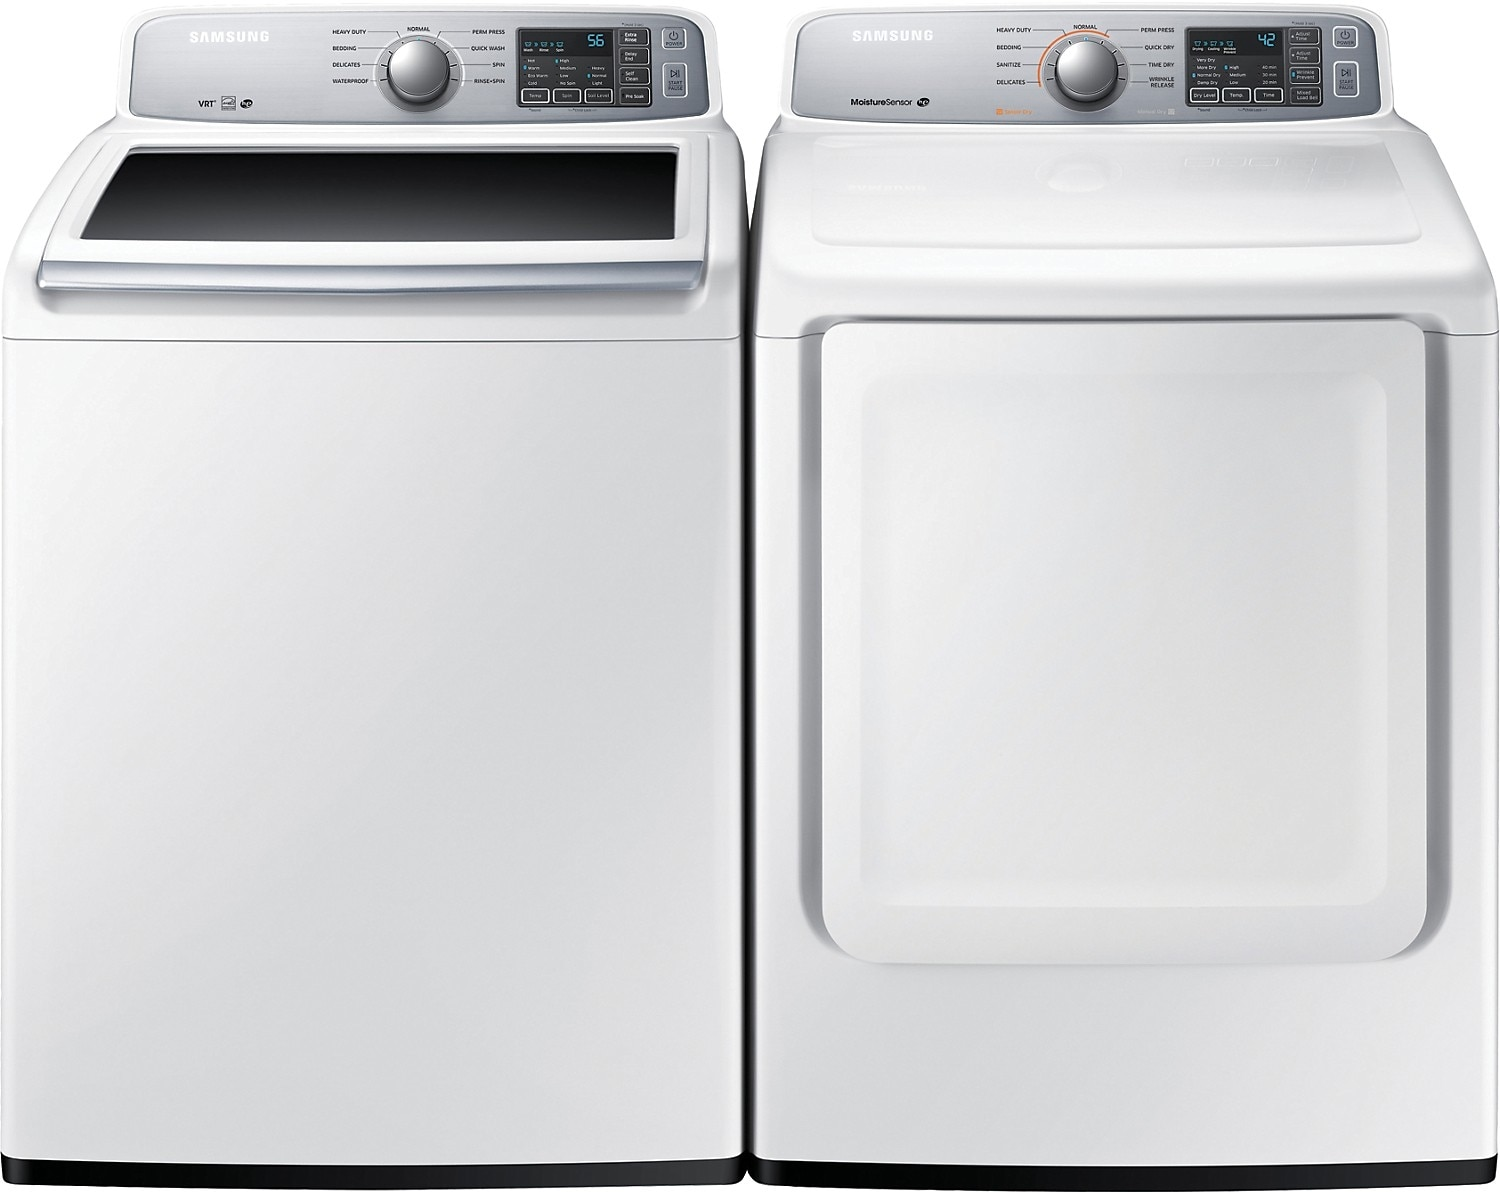 Washers and Dryers - Samsung 5.2 Cu. Ft.  Top-Load Washer and 7.4 Cu. Ft. Electric Dryer - White